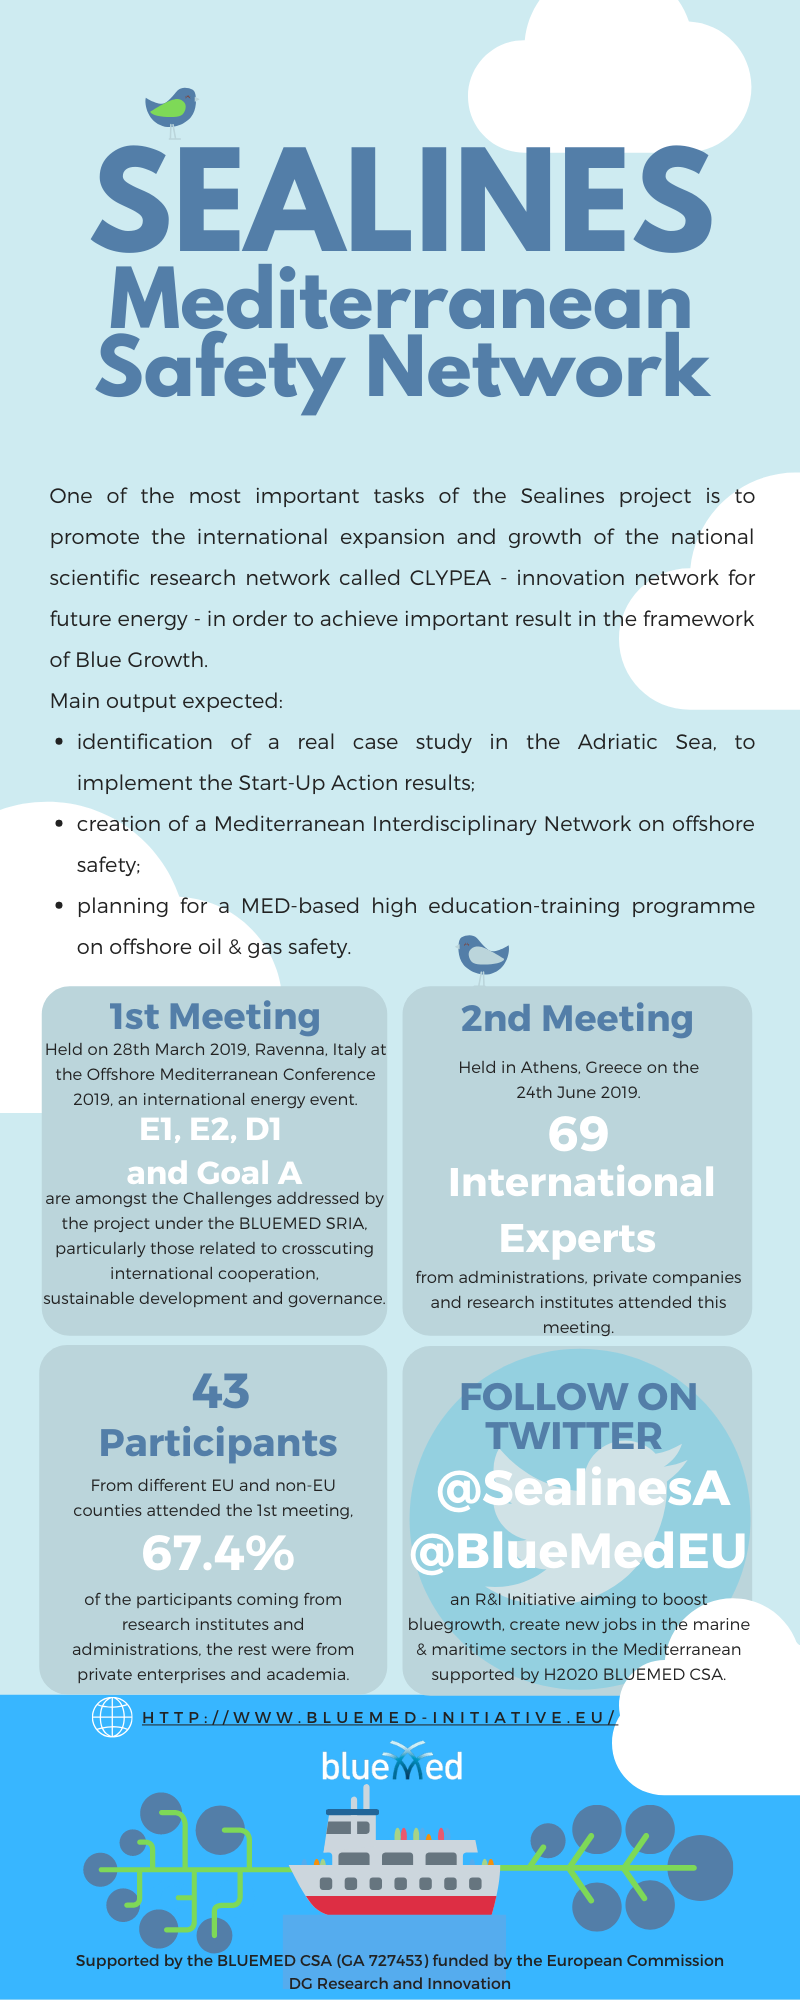 Click on the image to expand the infographic. You can download it here